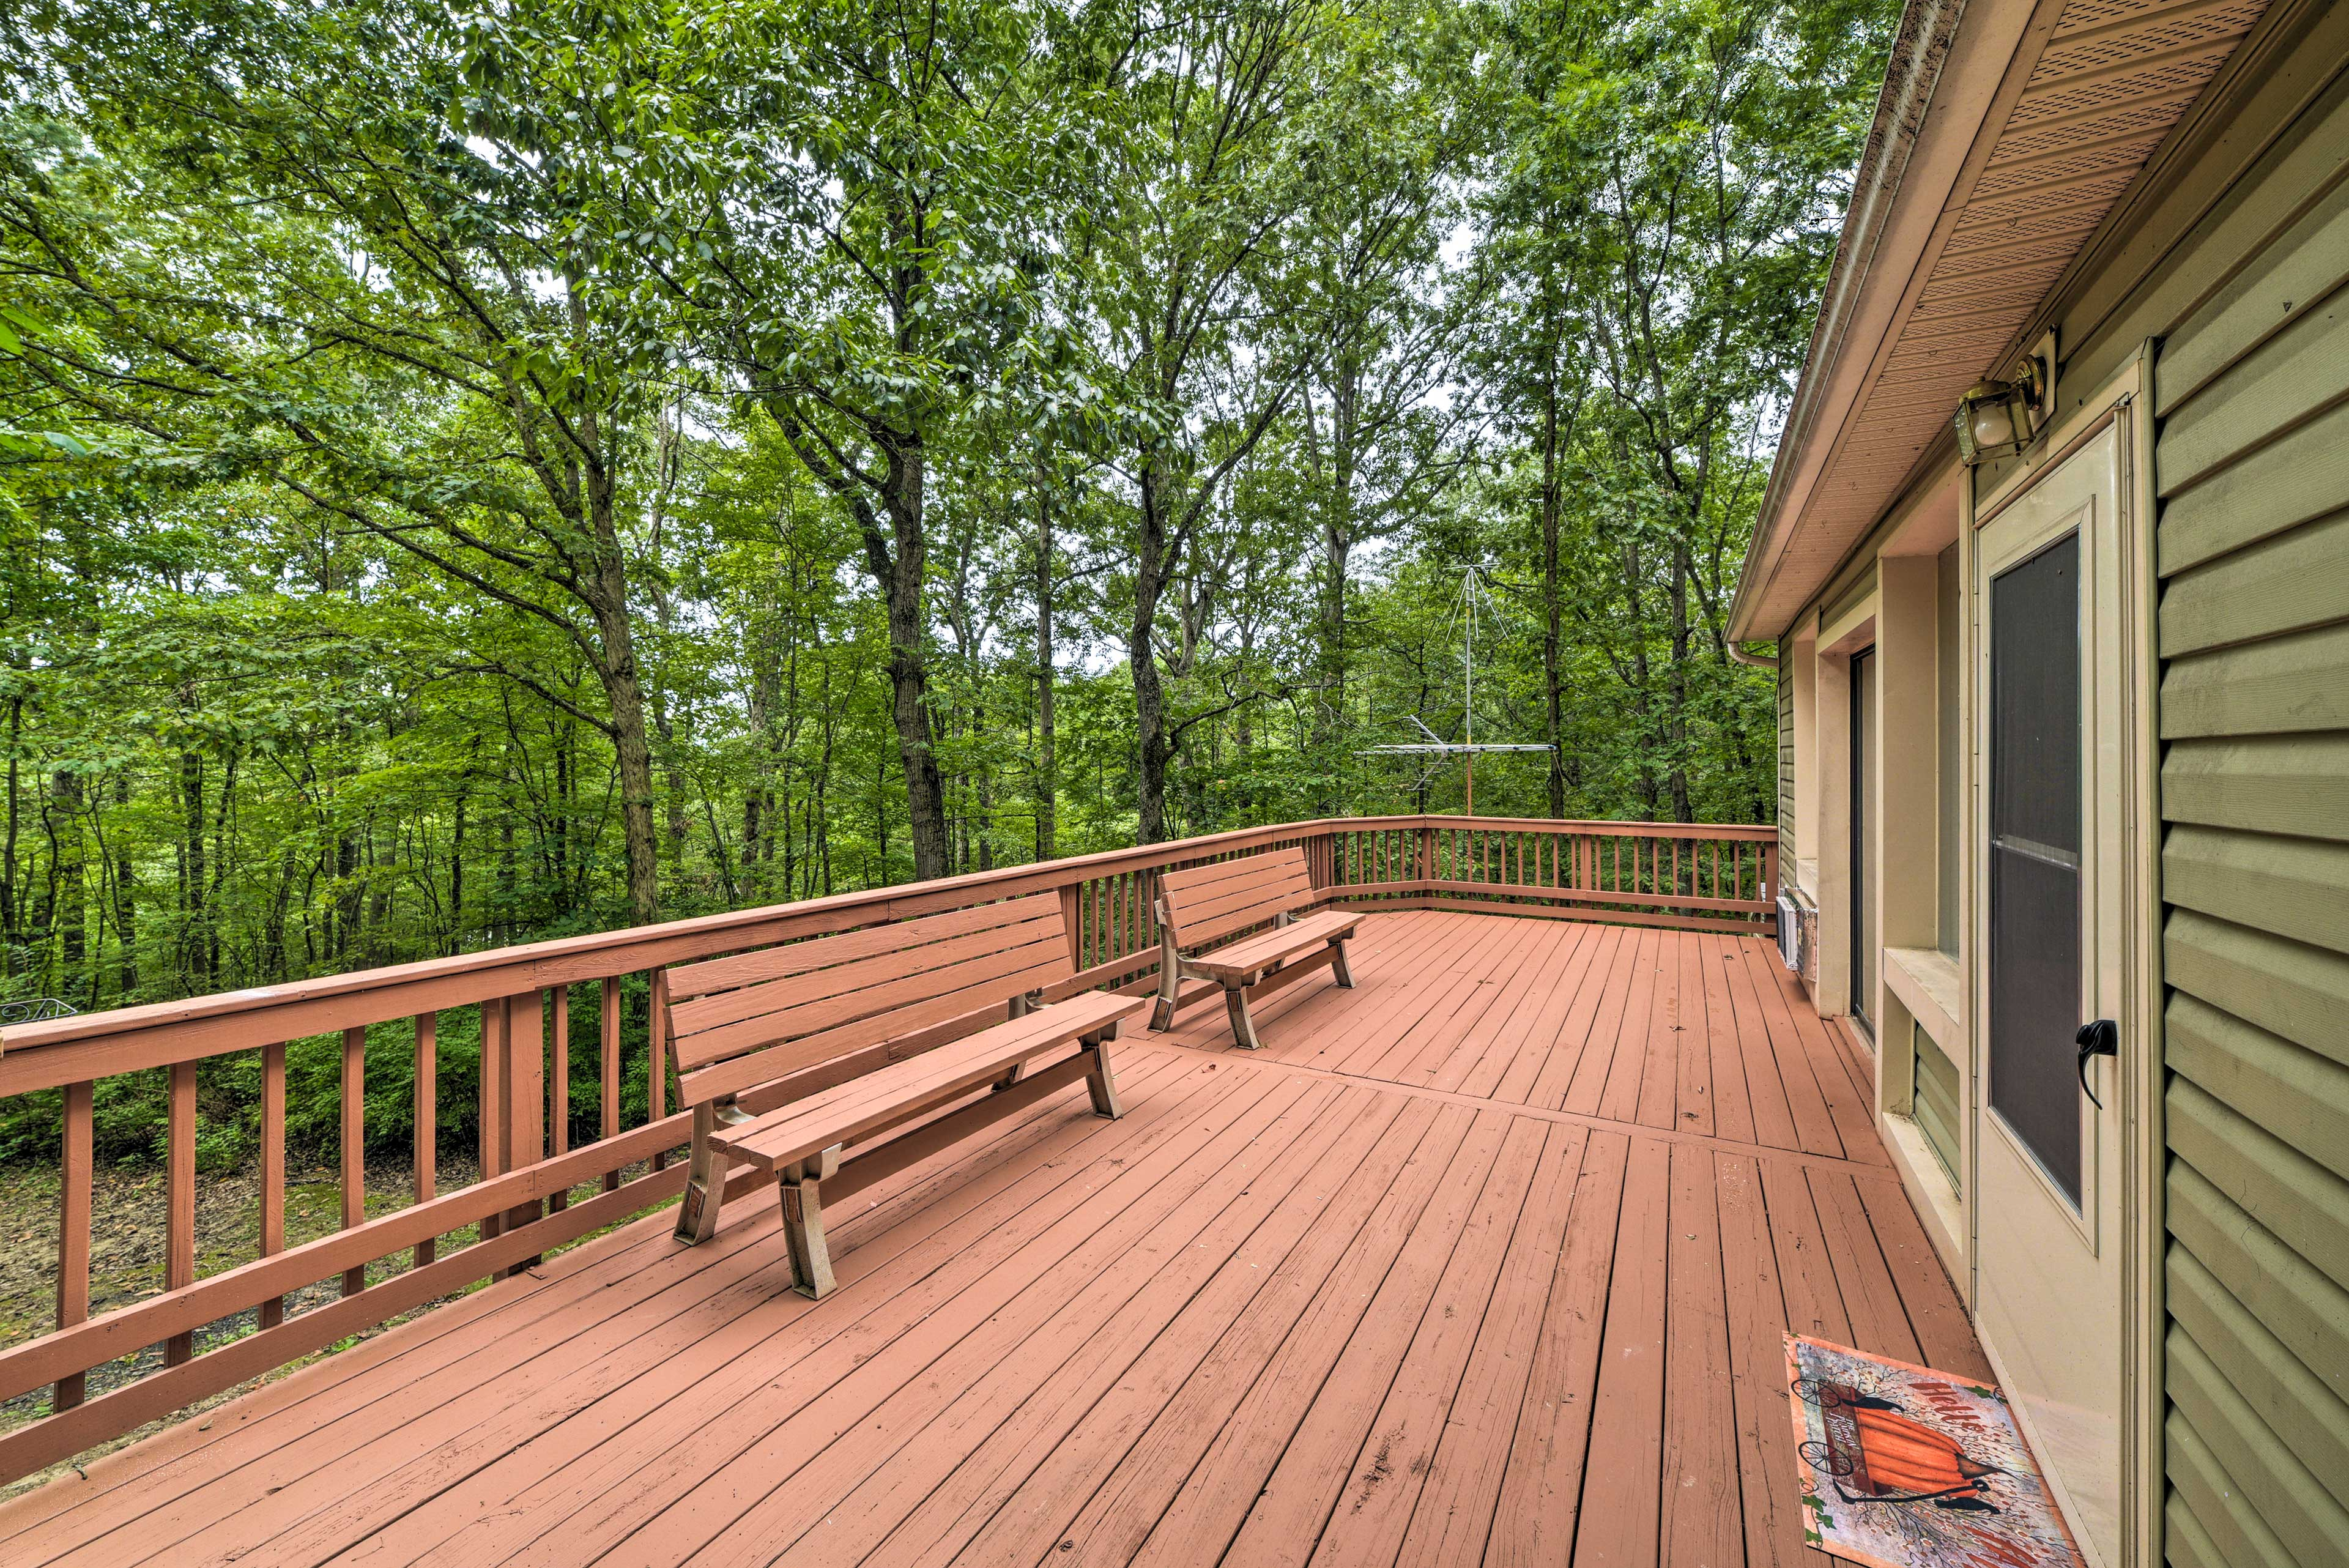 Breathe in the fresh air as you hang out on the deck.